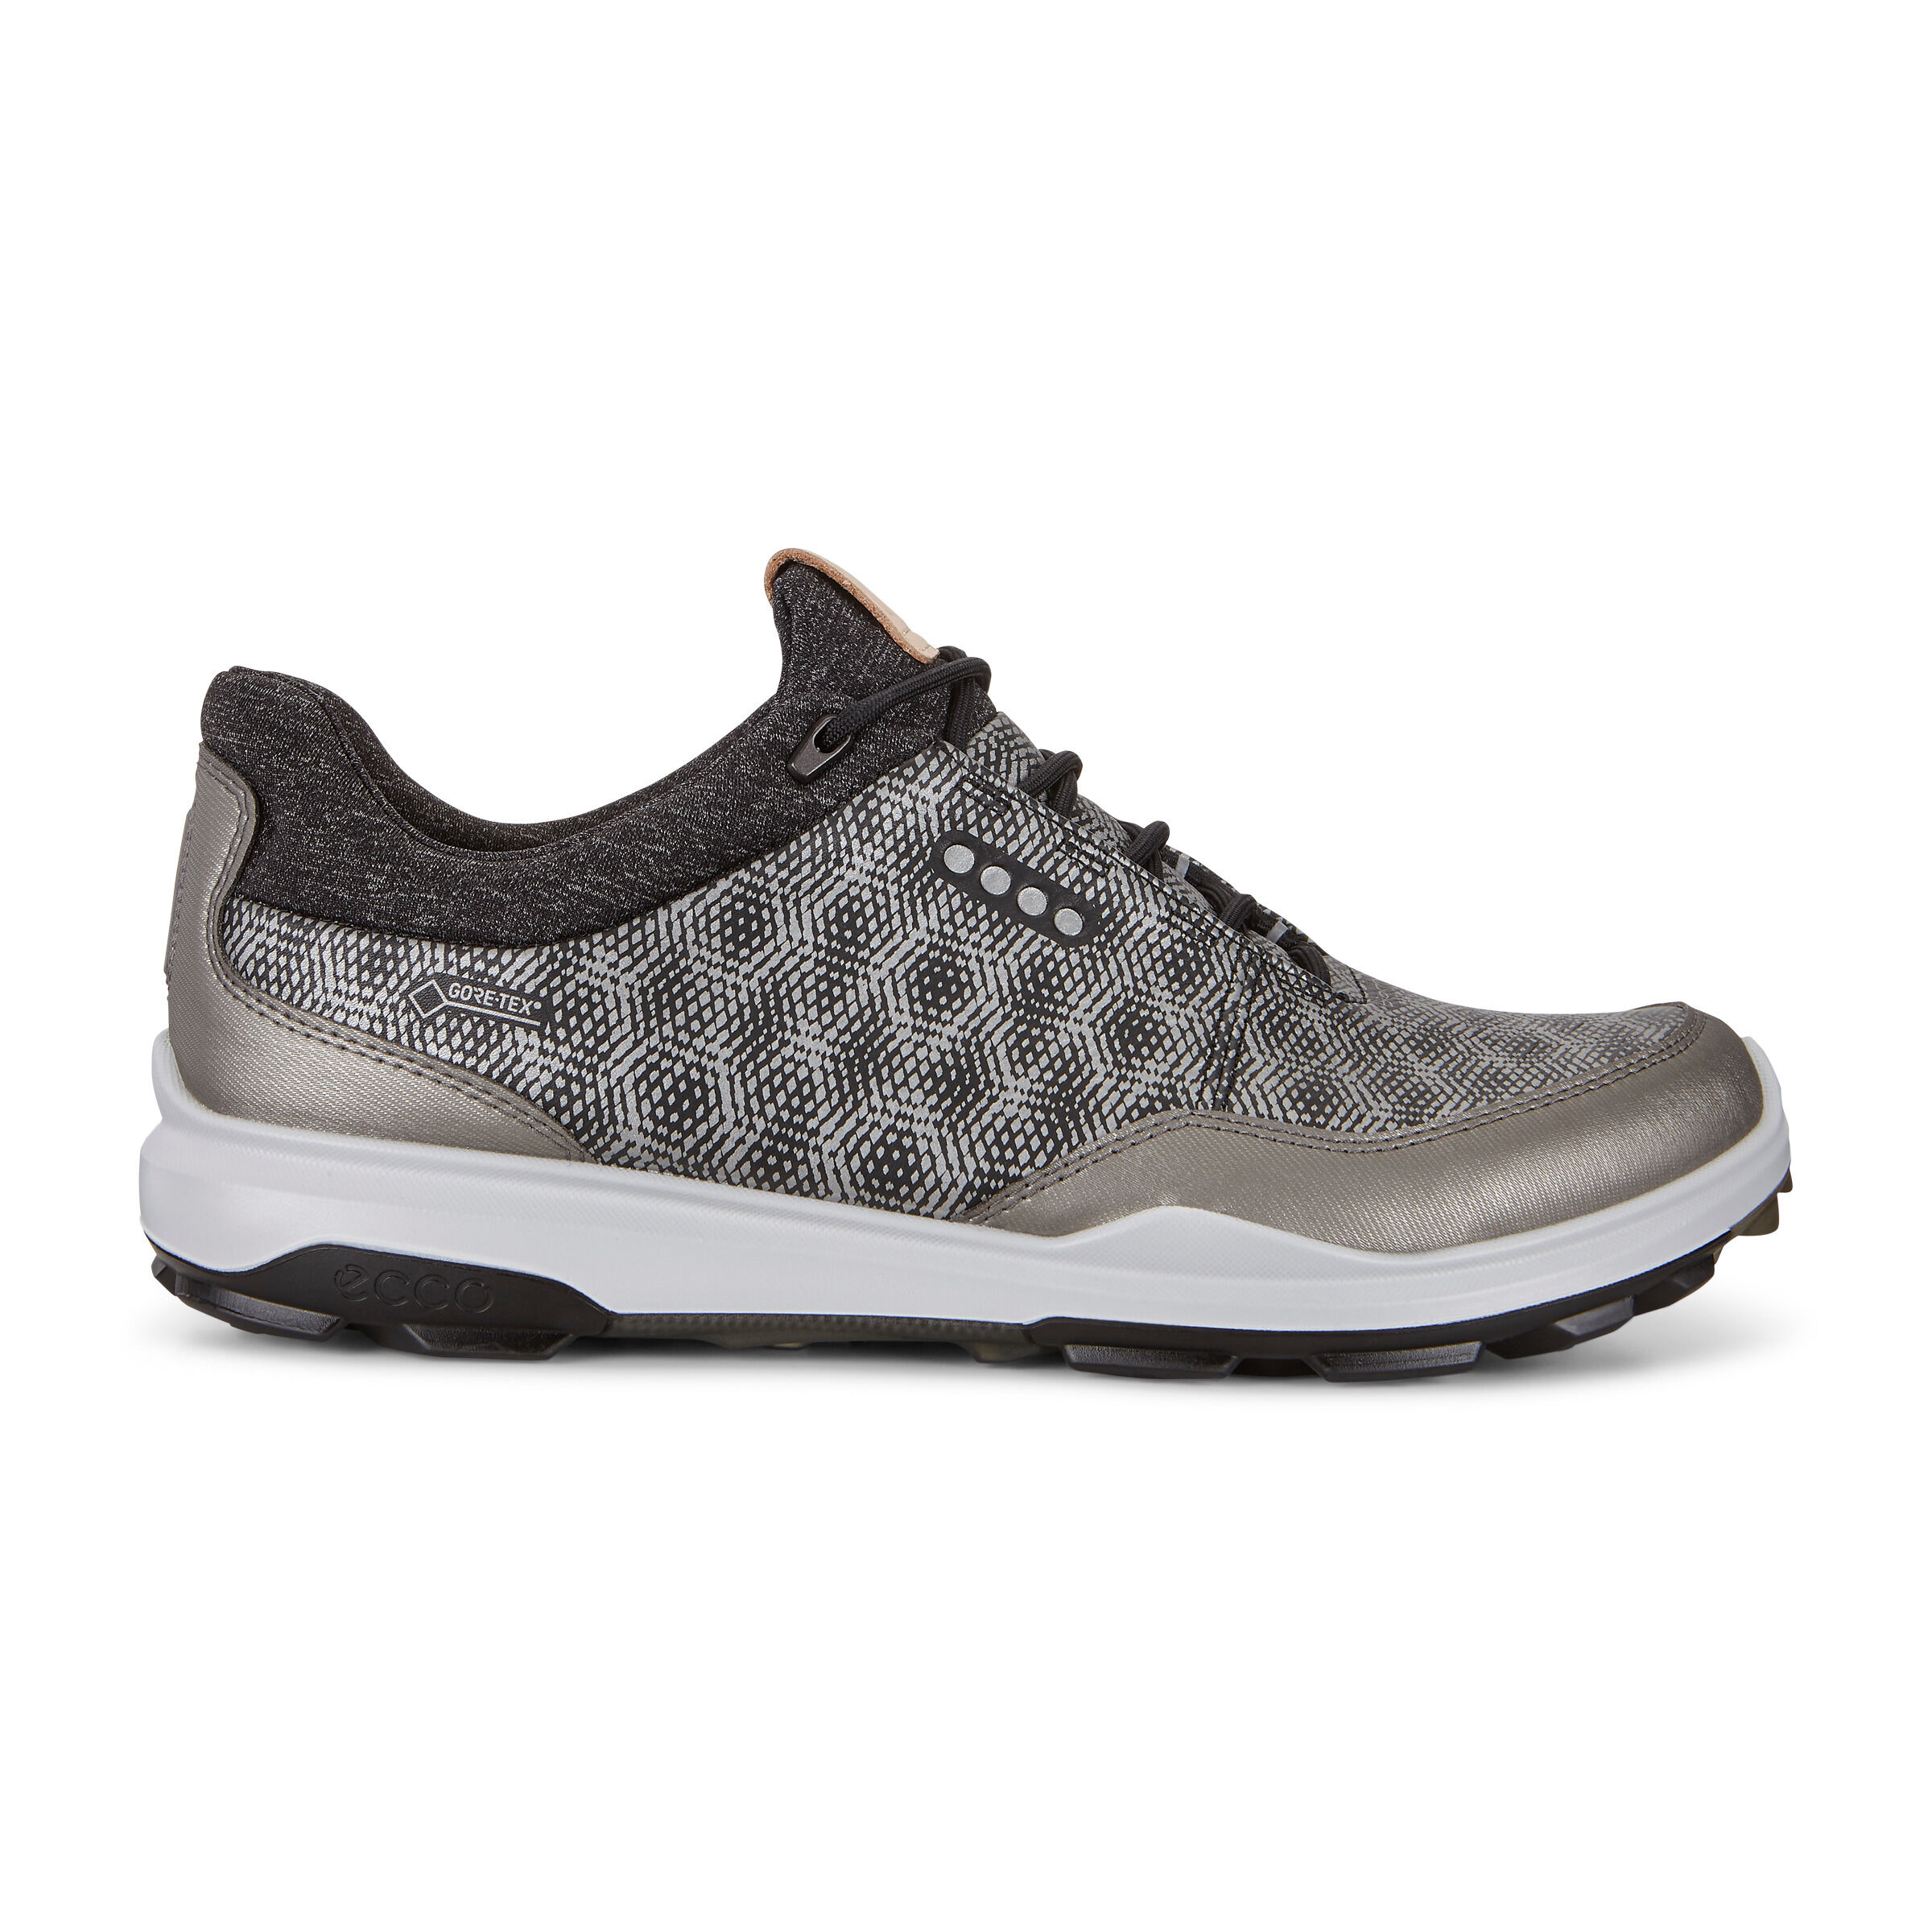 98d4c0897a4004 pas cher chaussures golf ecco soldes - Achat | gdgclub.oneloyalty.in